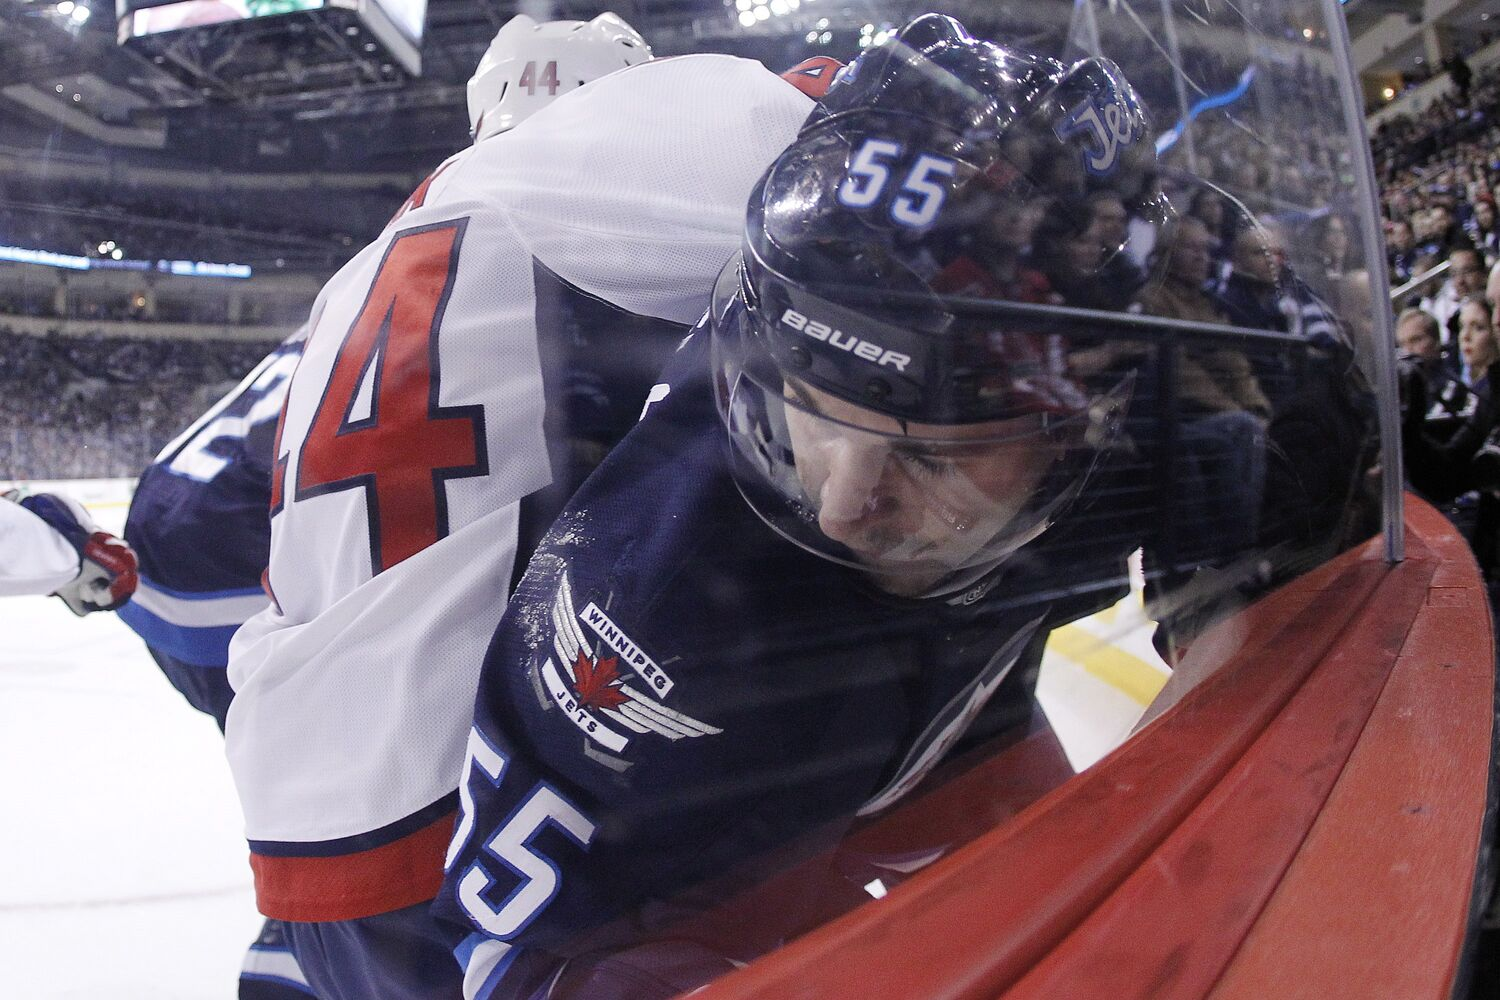 Mark Scheifele is pinned against the boards by Washington's Brooks Orpik. (John Woods / The Canadian Press)